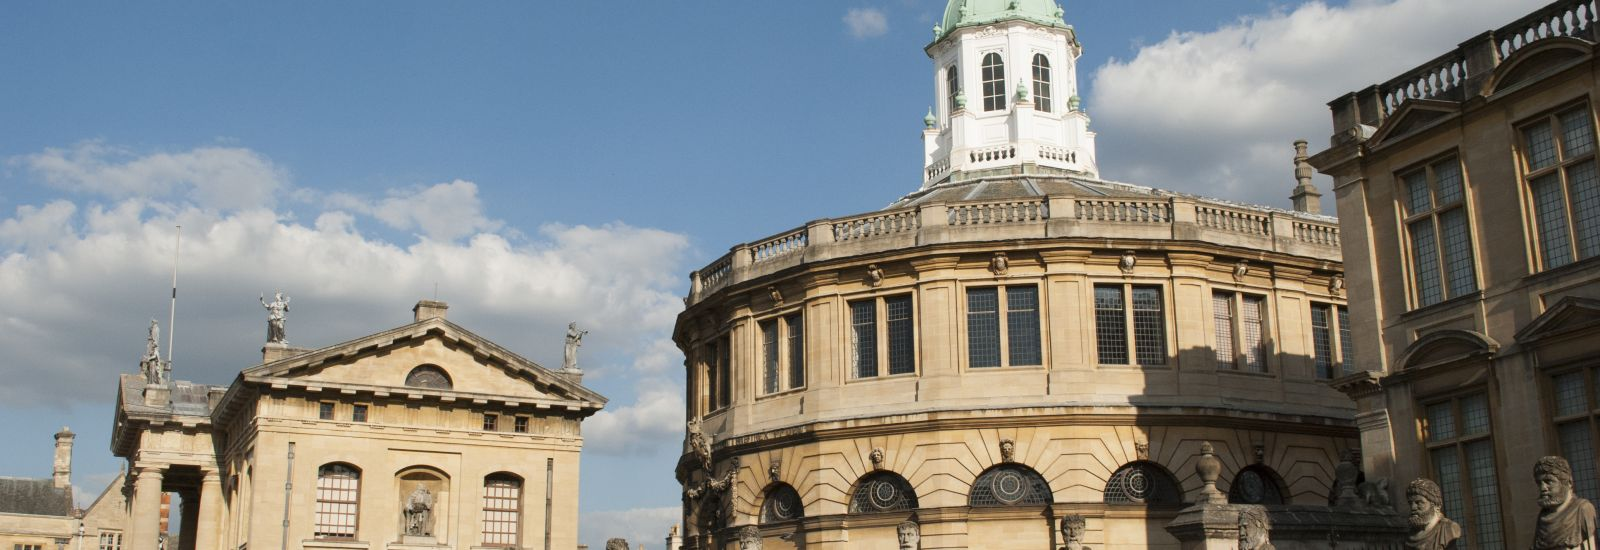 In Oxford - Sheldonian Theatre